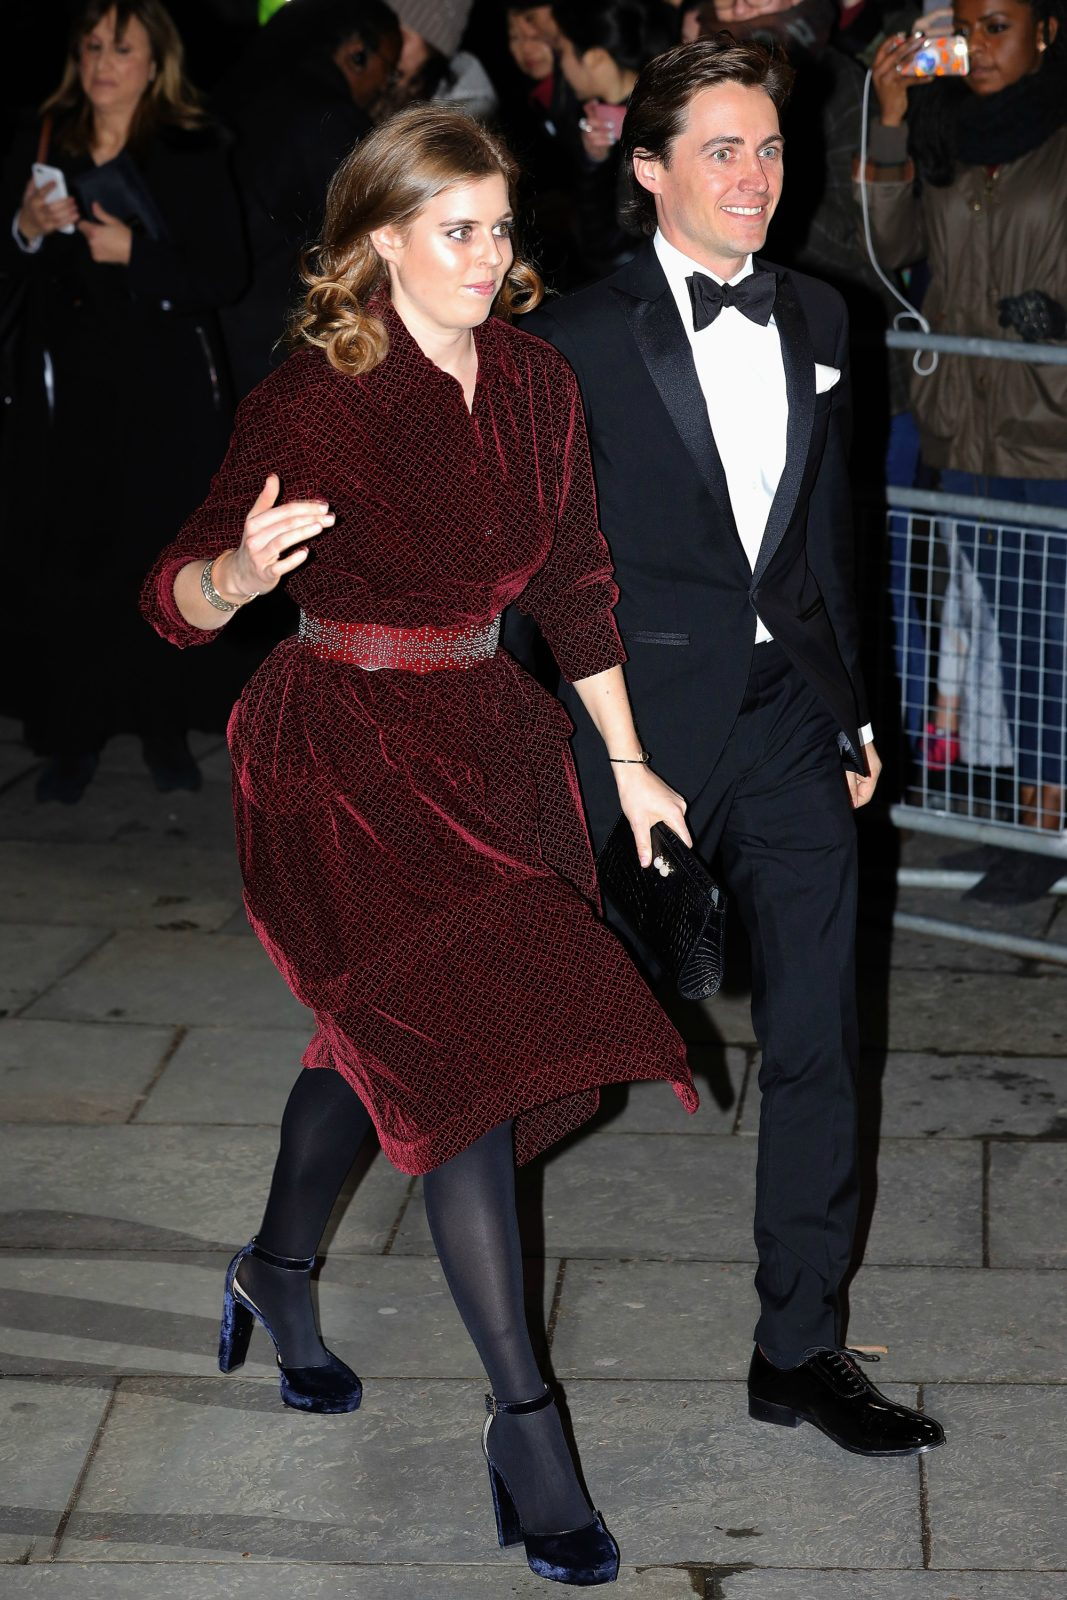 Princess Beatrice made her first public appearance with boyfriend Edoardo Mapelli Mozzi. Source: Getty.